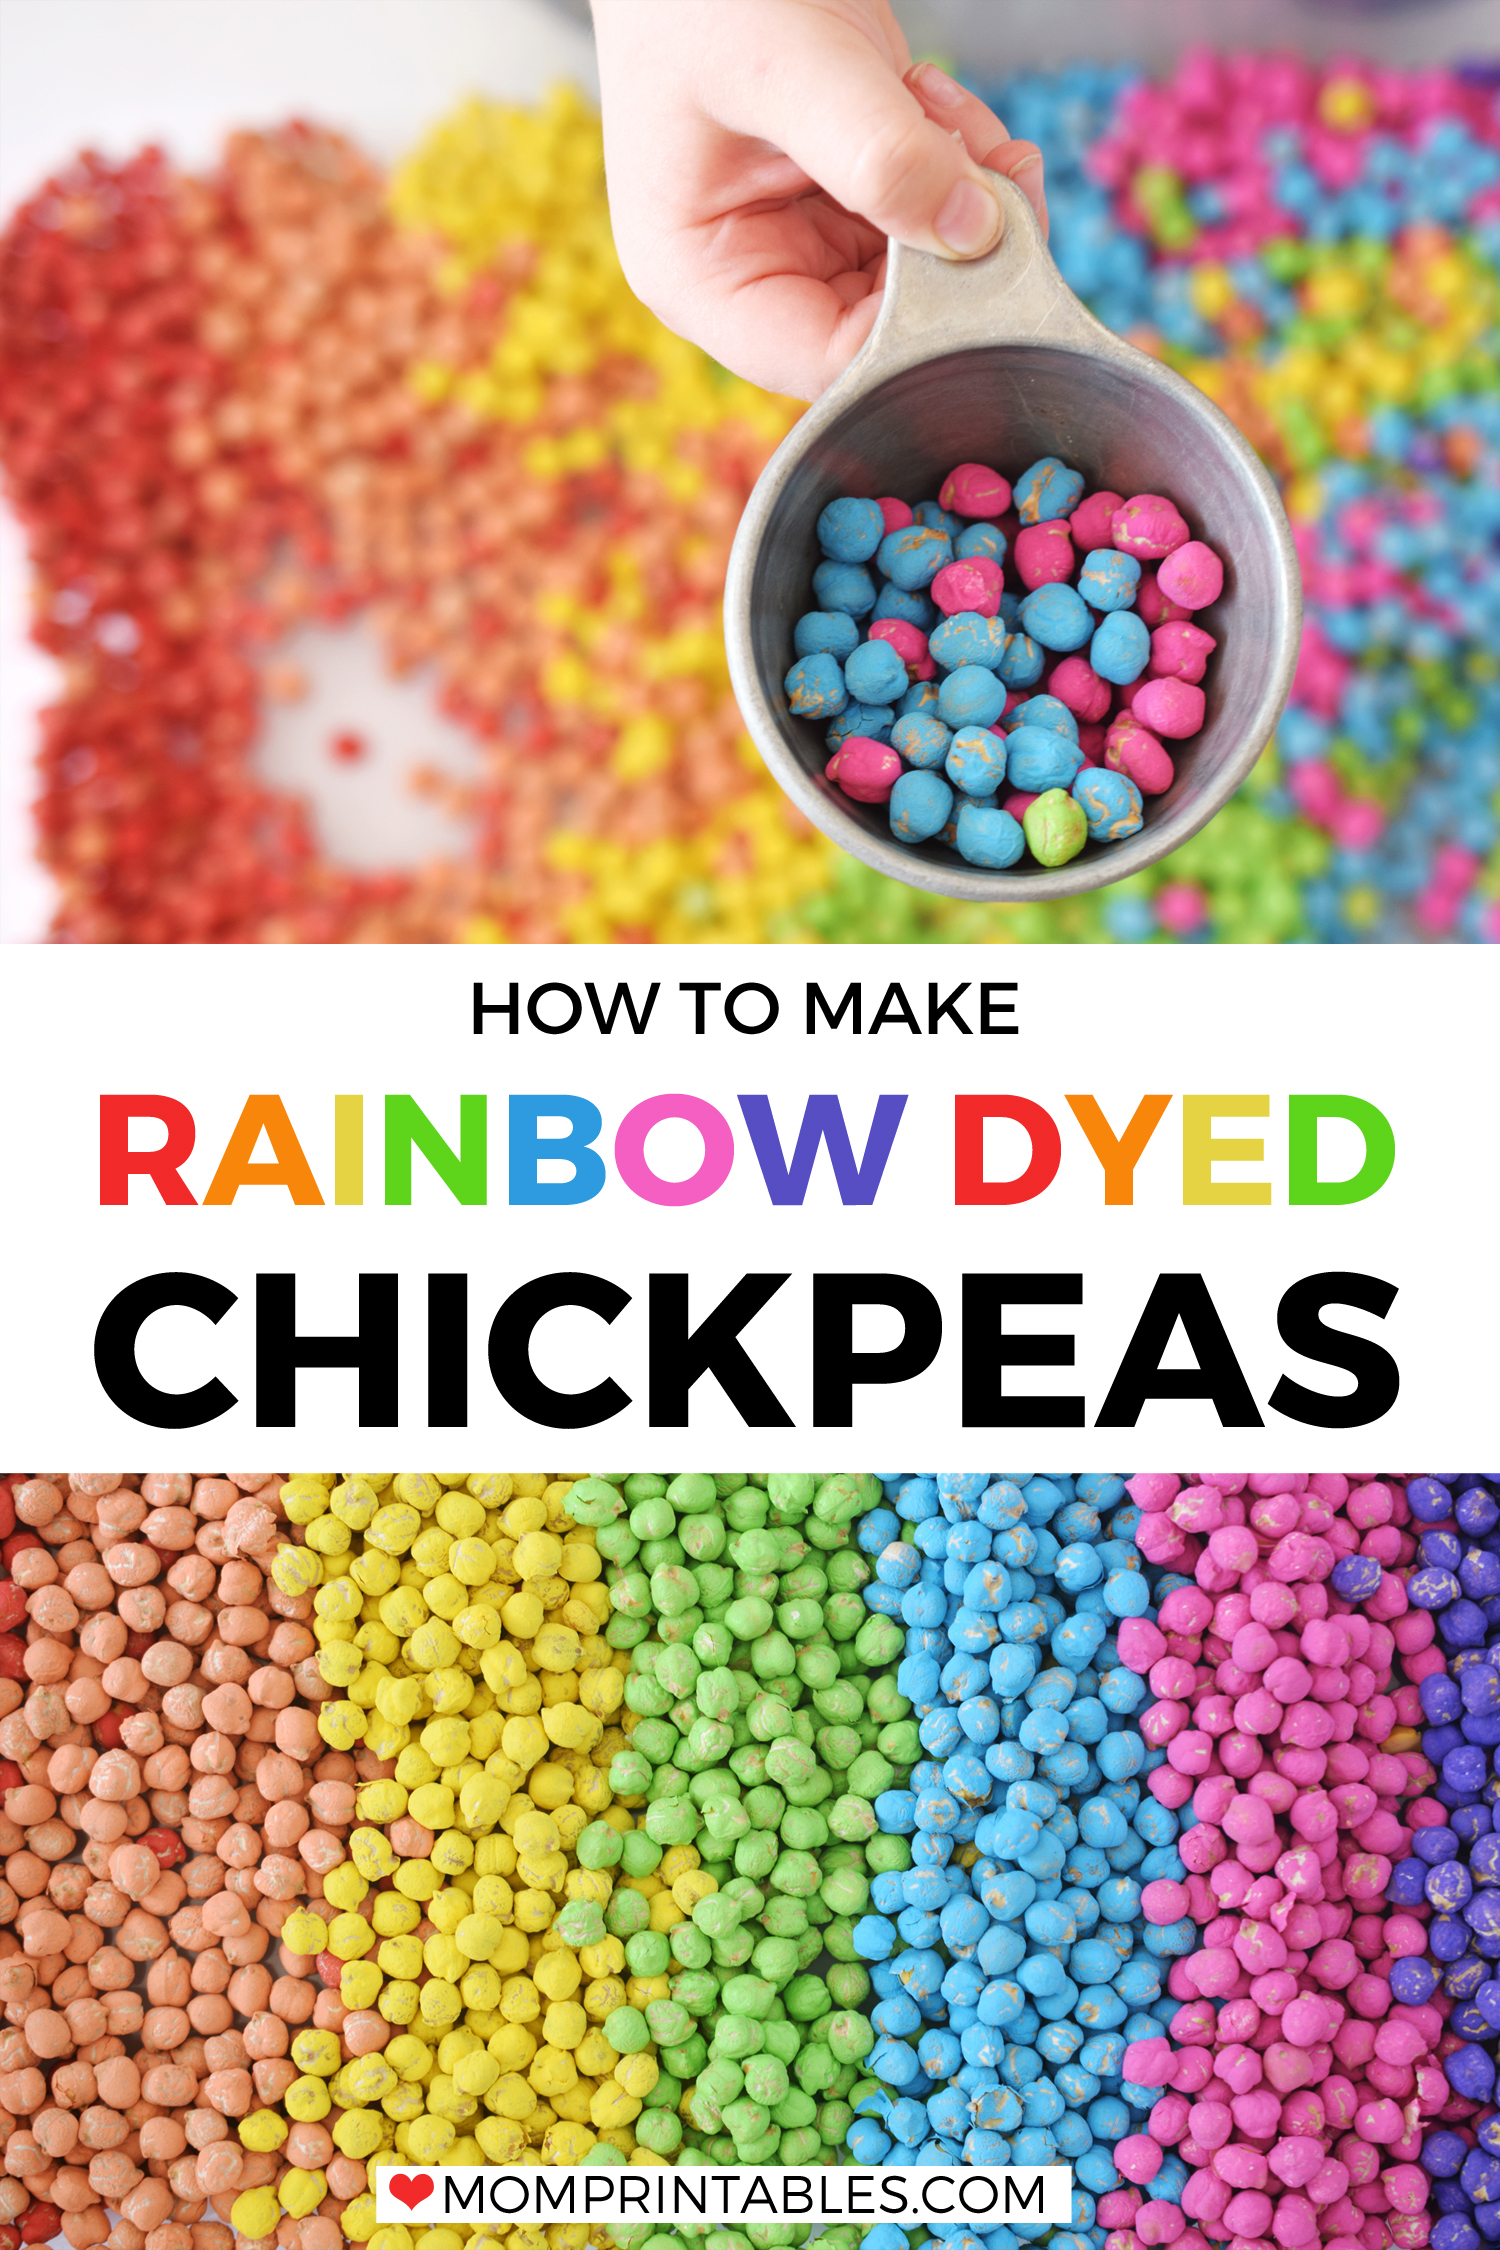 Rainbow Dyed Chickpeas Sensory Play Bin for kids. Learn how to make them and the best technique to get the brightest colors! #sensoryplay #sensory #kidscraft #kids